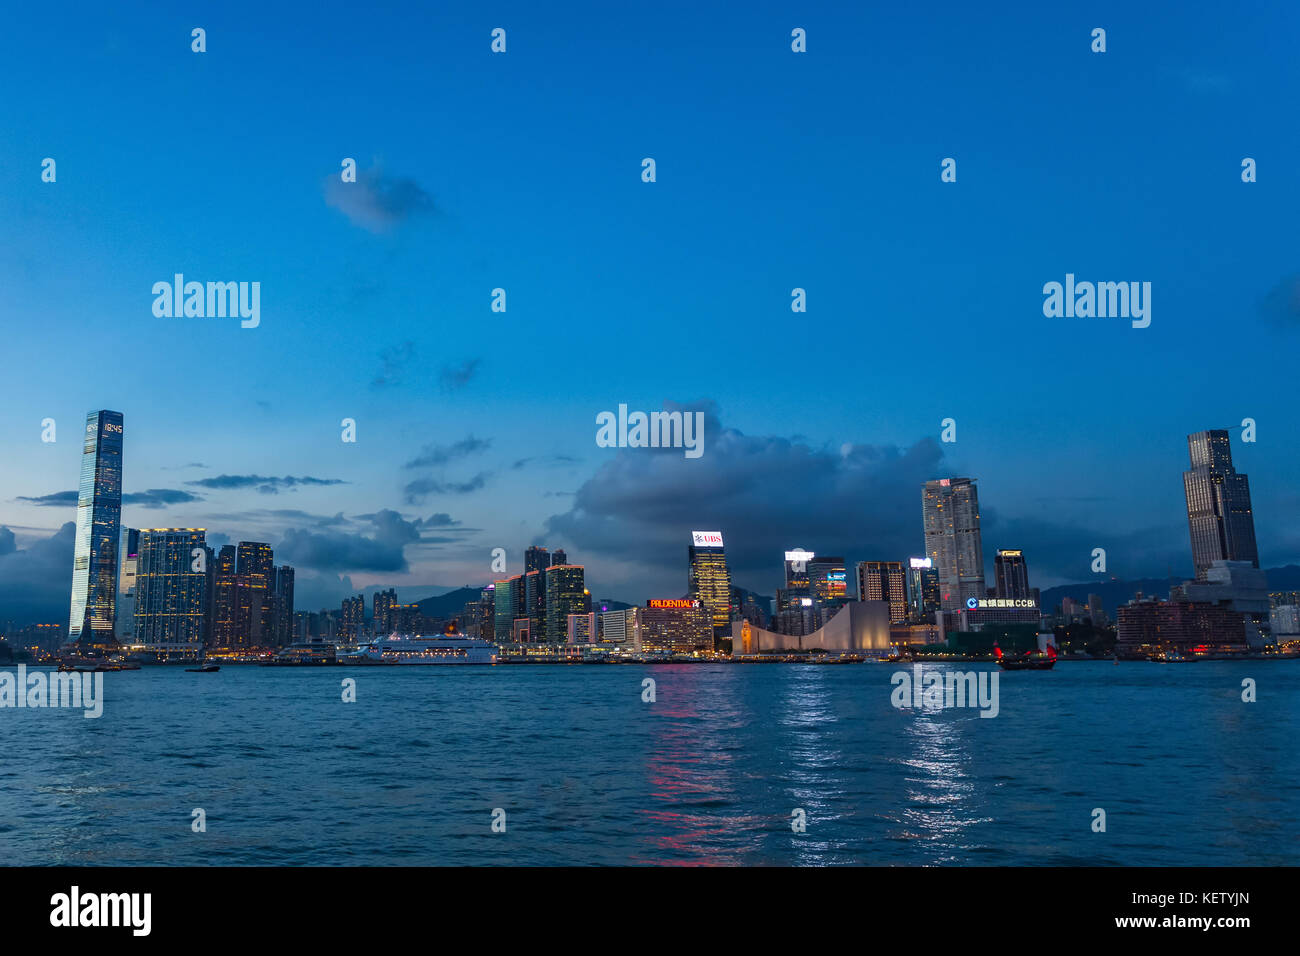 Honk kong city view, China. - Stock Image